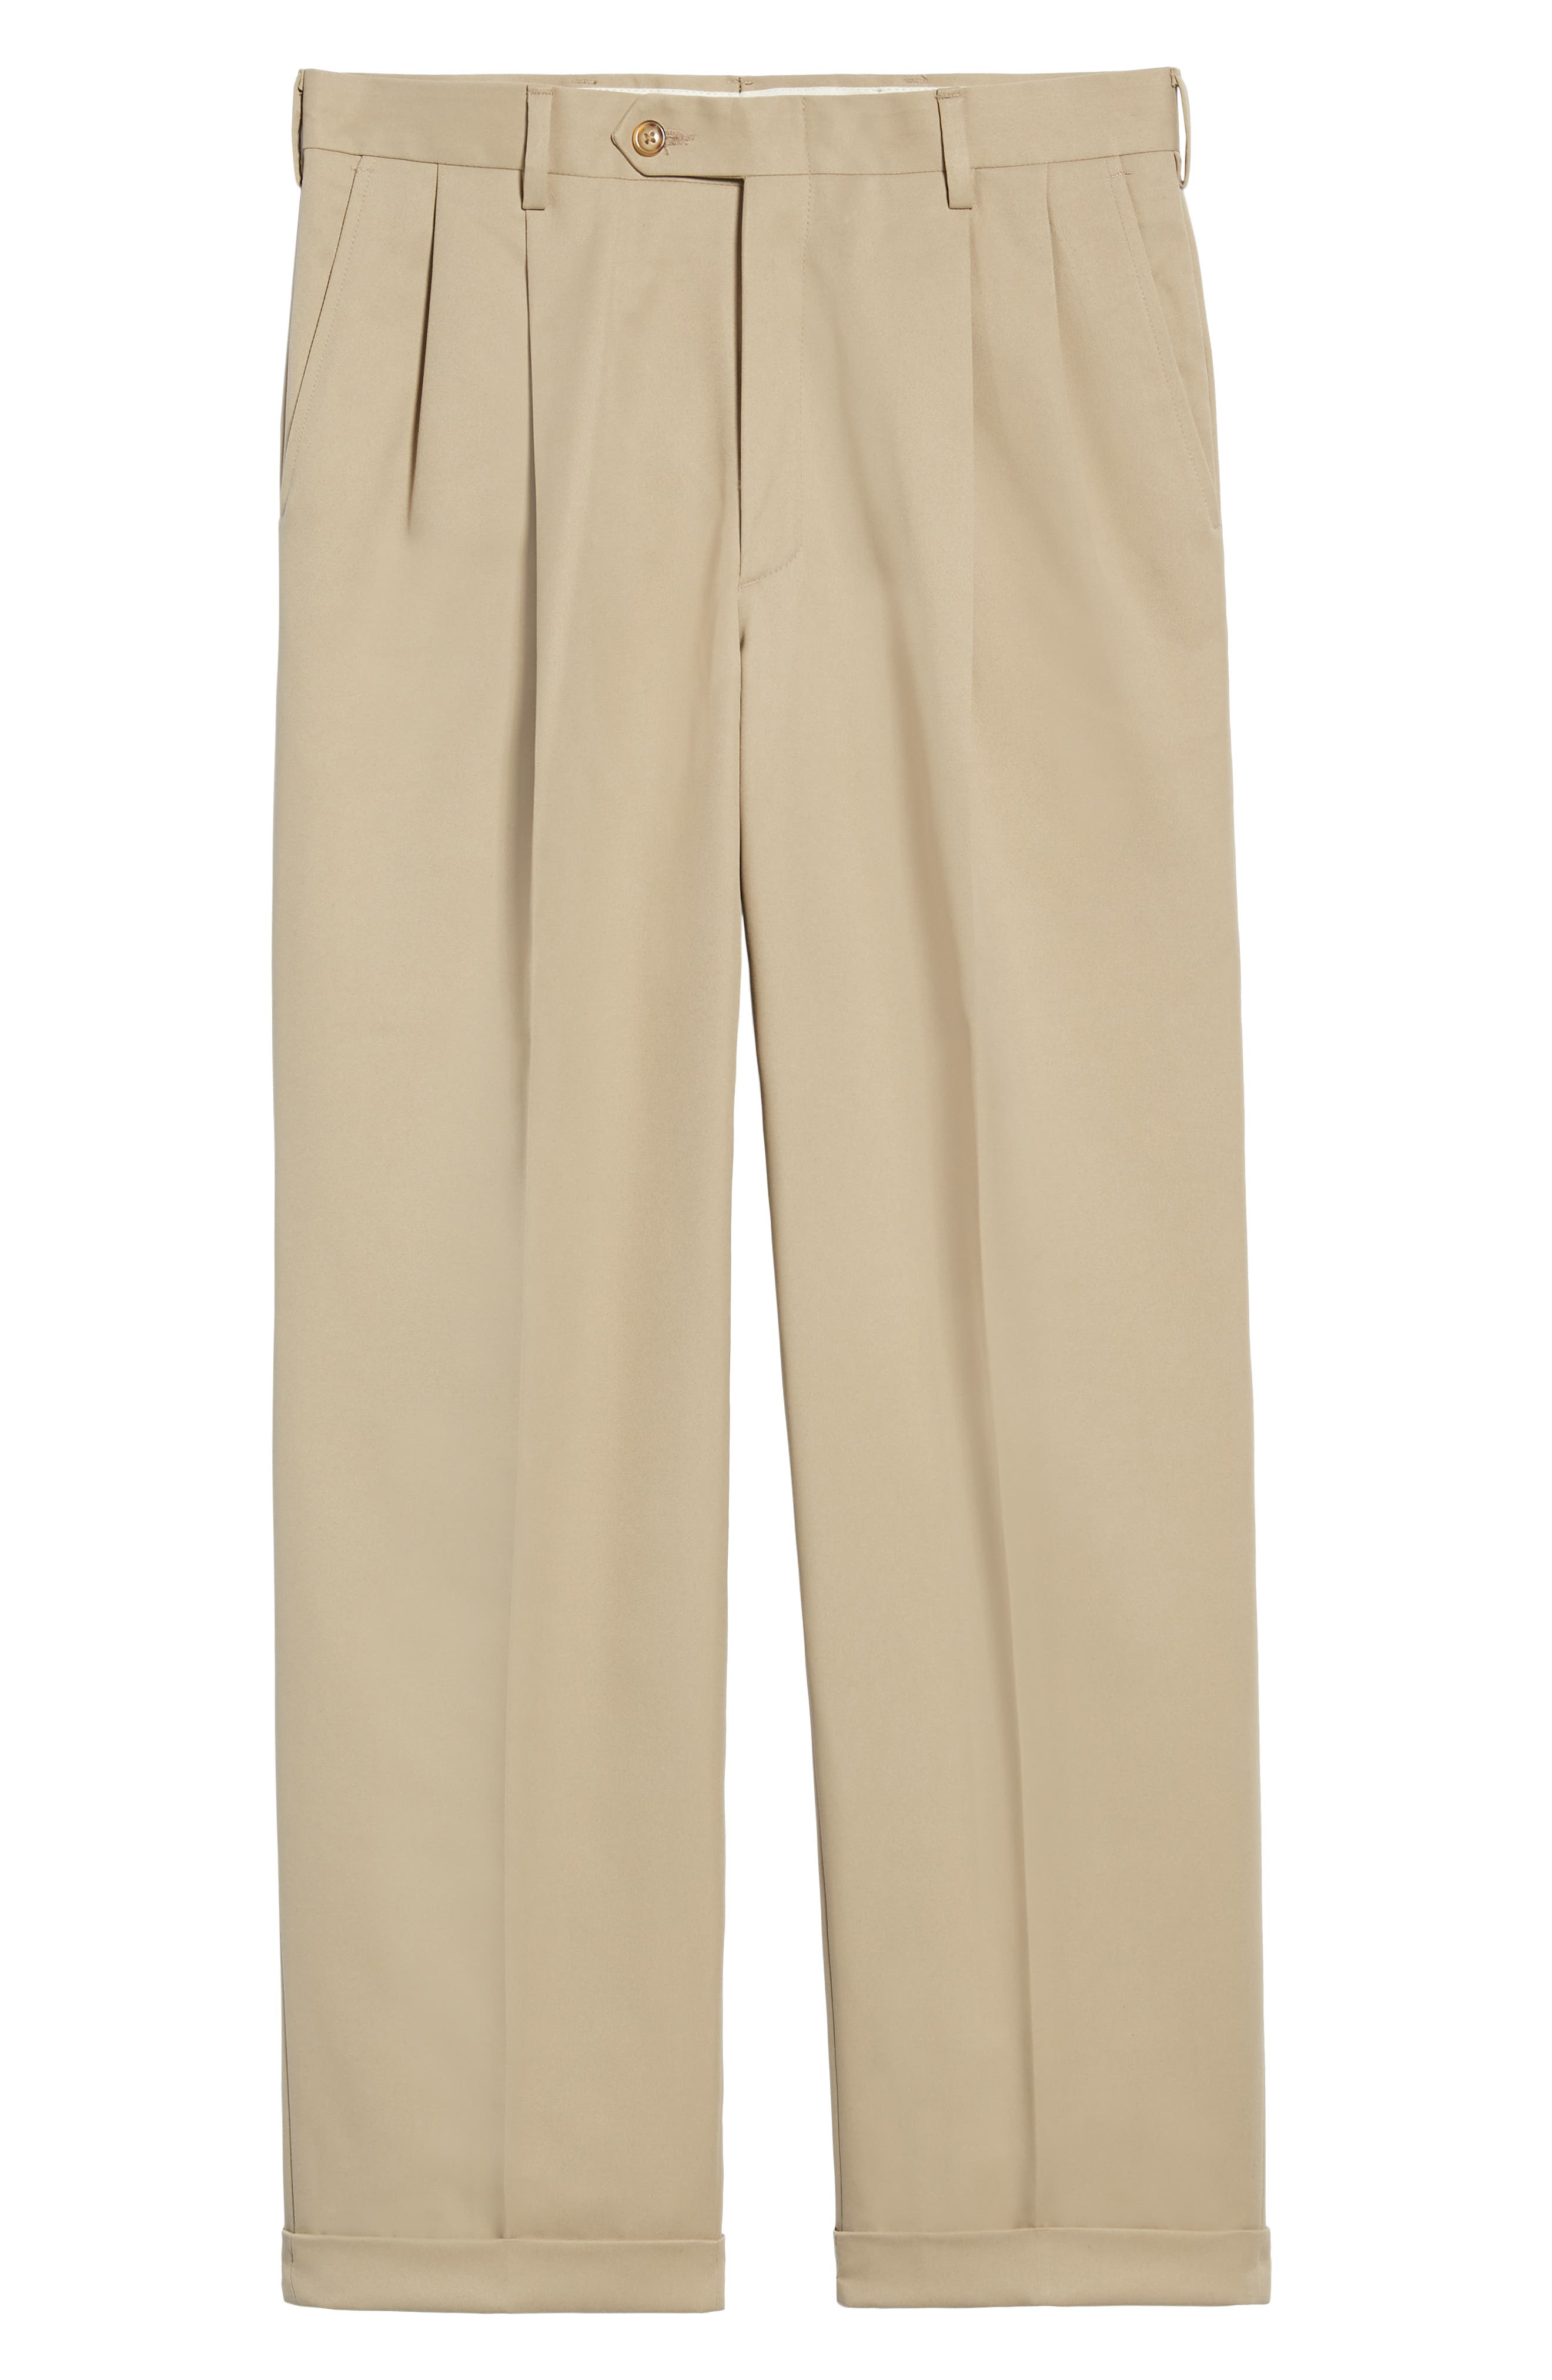 Classic Fit Pleated Microfiber Performance Trousers,                             Alternate thumbnail 6, color,                             TAN